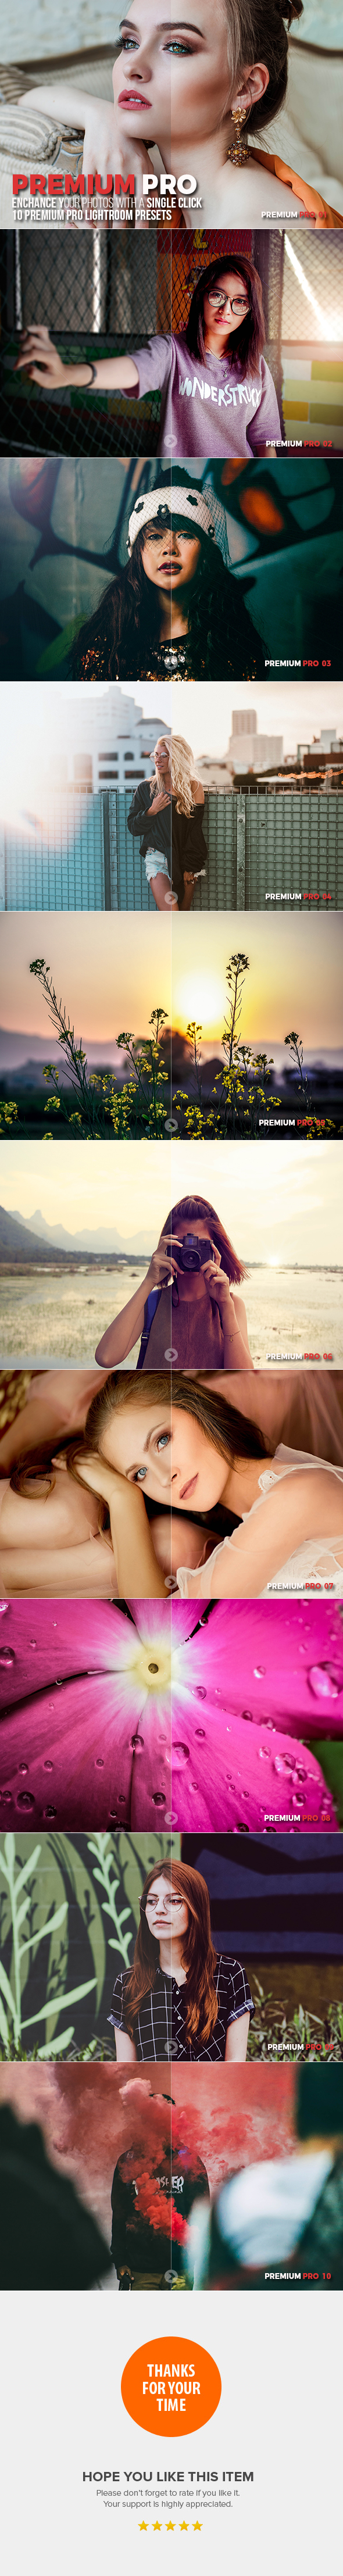 10 Premium Pro Lightroom Presets - Lightroom Presets Add-ons